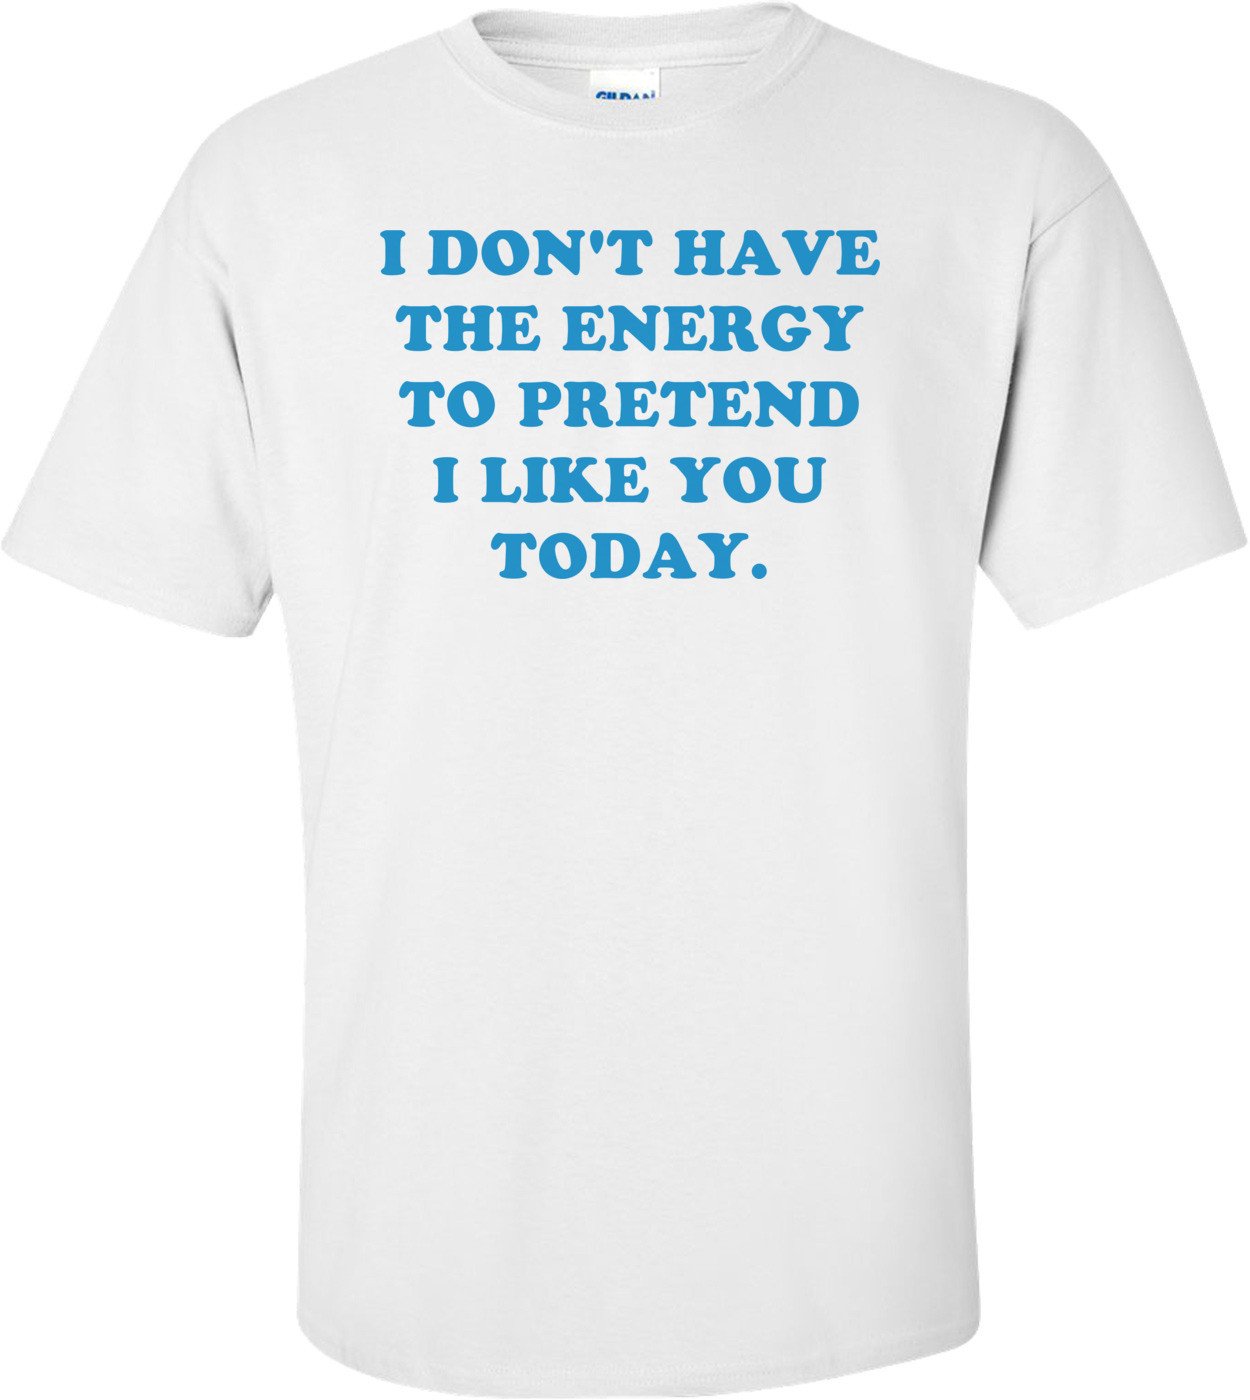 I DON'T HAVE THE ENERGY TO PRETEND I LIKE YOU TODAY. Shirt